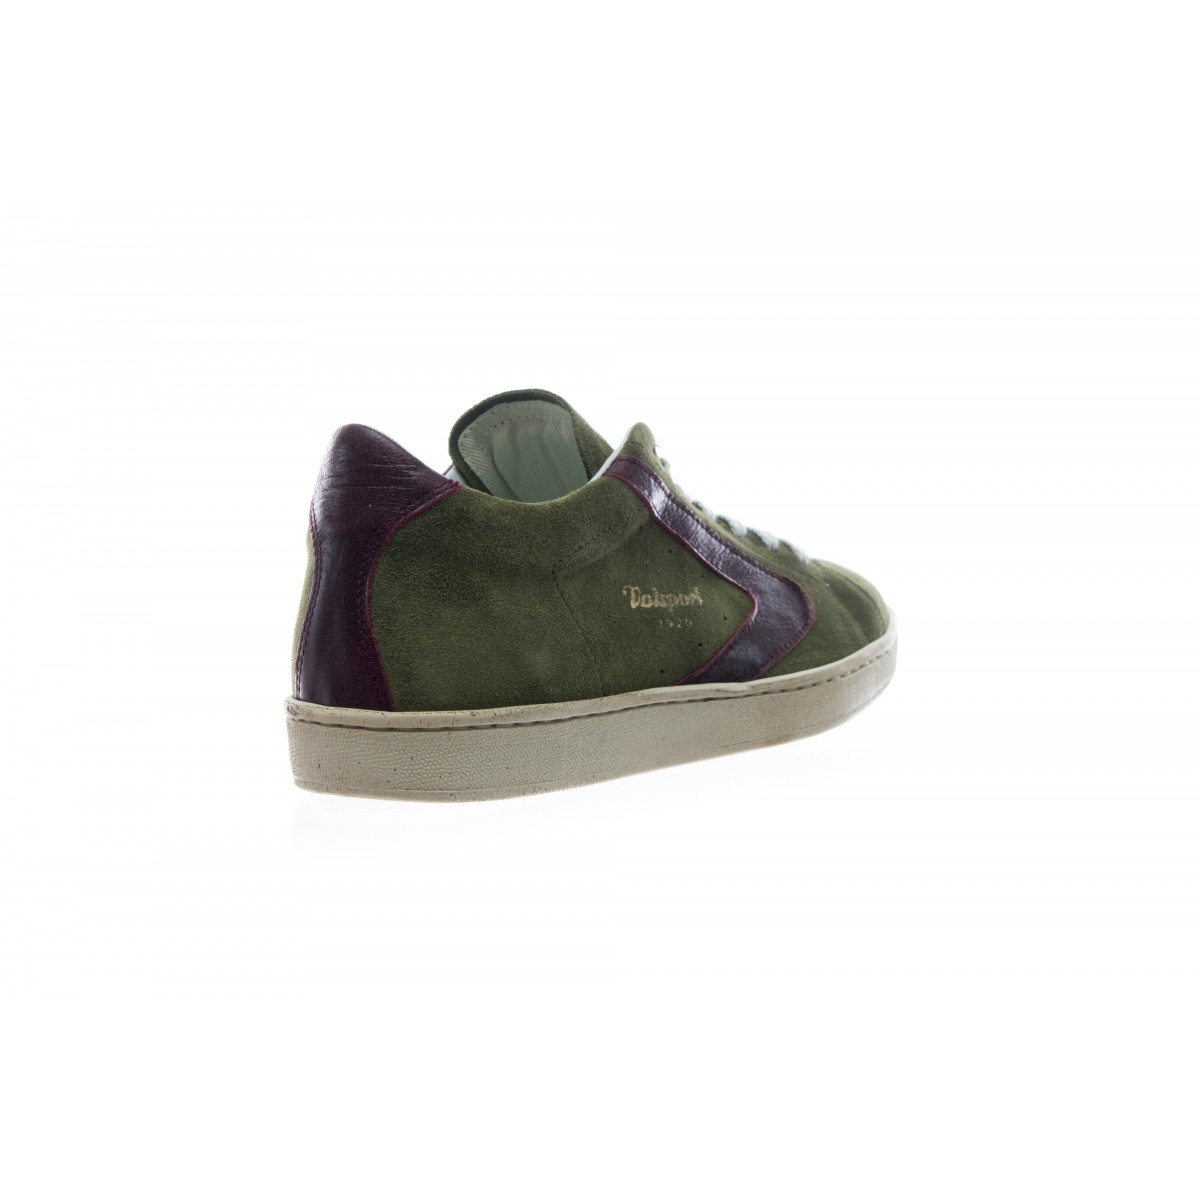 Scarpa - Tournament suede